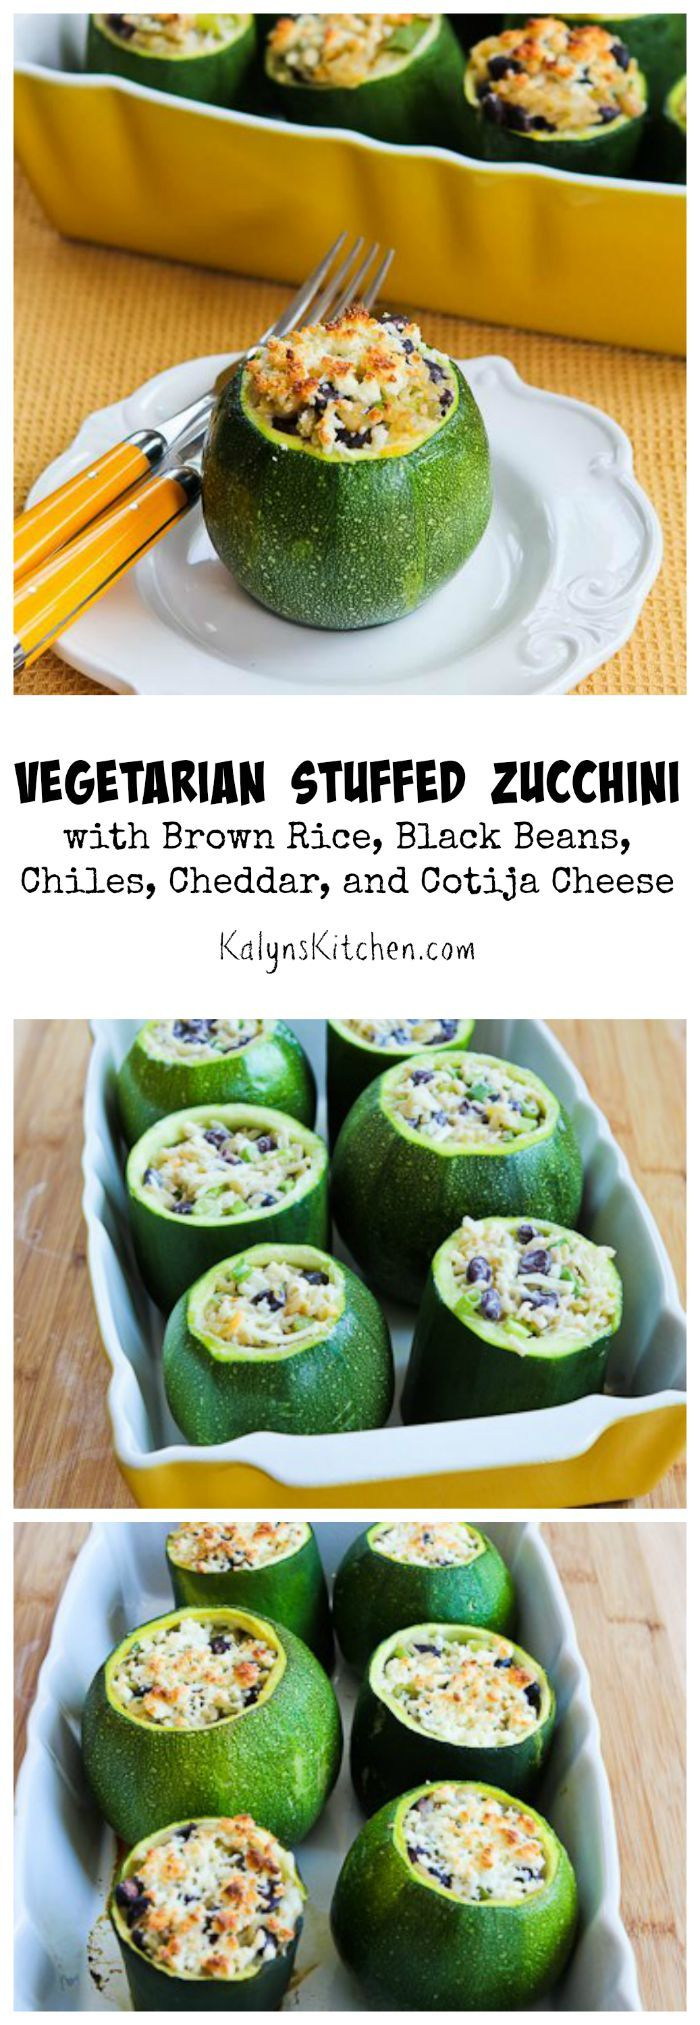 Stuffed zucchini gets a southwestern touch in this Vegetarian Stuffed Zucchini with Brown Rice, Black Beans, Chiles, Cheddar, and Cotija Cheese. [from KalynsKitchen.com] #GlutenFree #MeatlessMonday